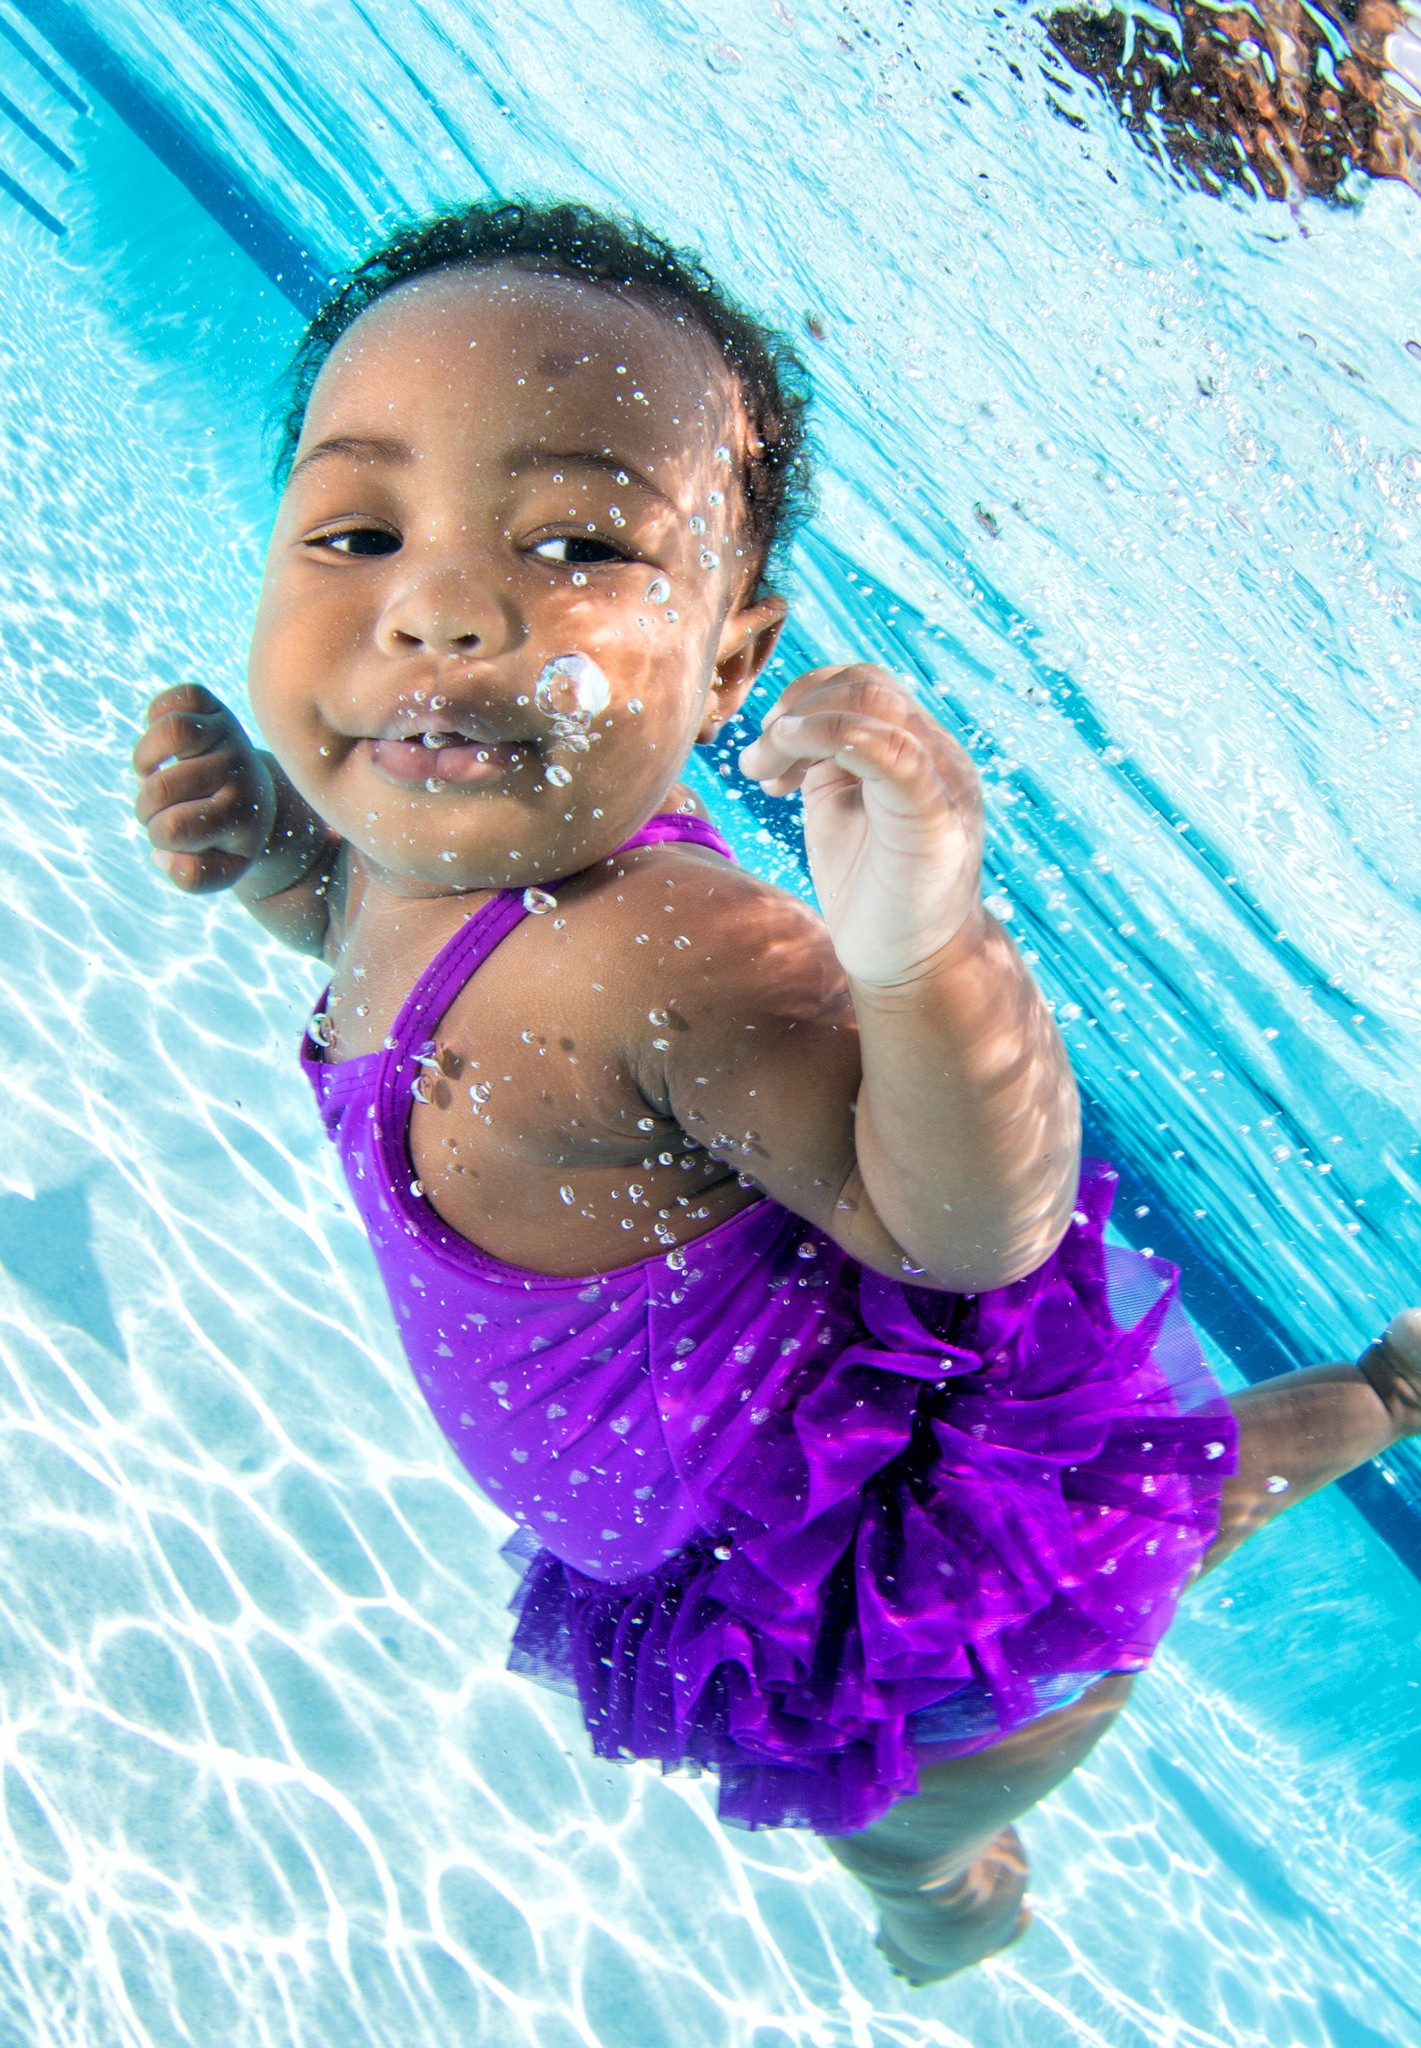 Babies swimming underwater inspiration photos - Infant Swimming Black Girl Funny Photographs Of Babies